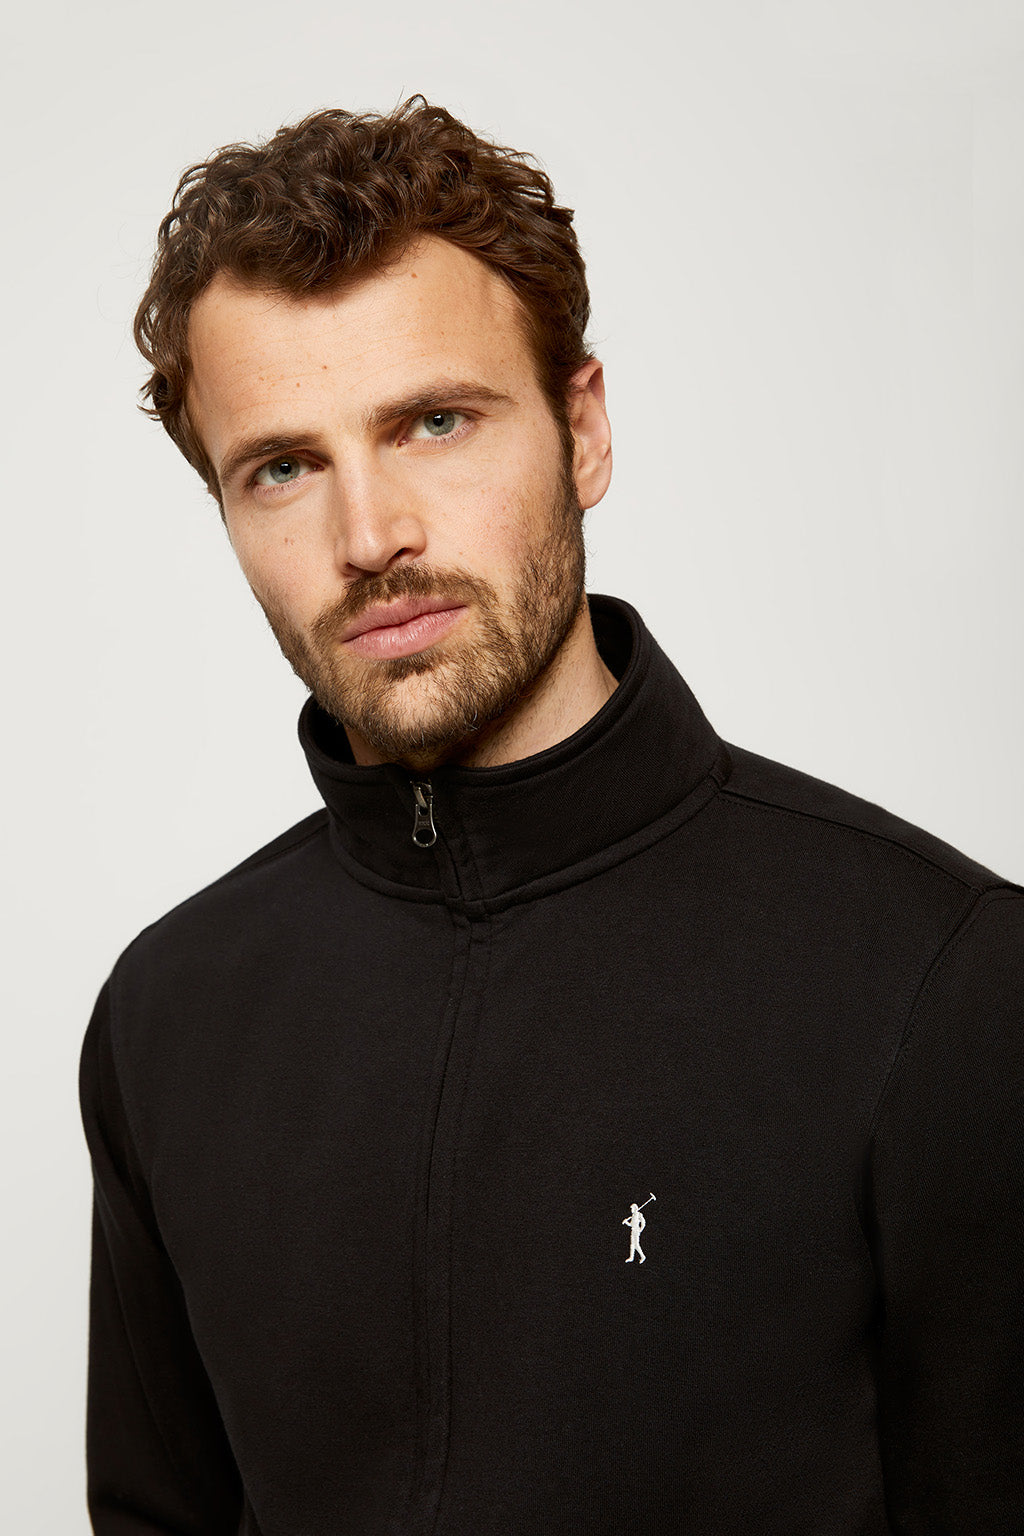 Black zipped sweatshirt with embroidered logo